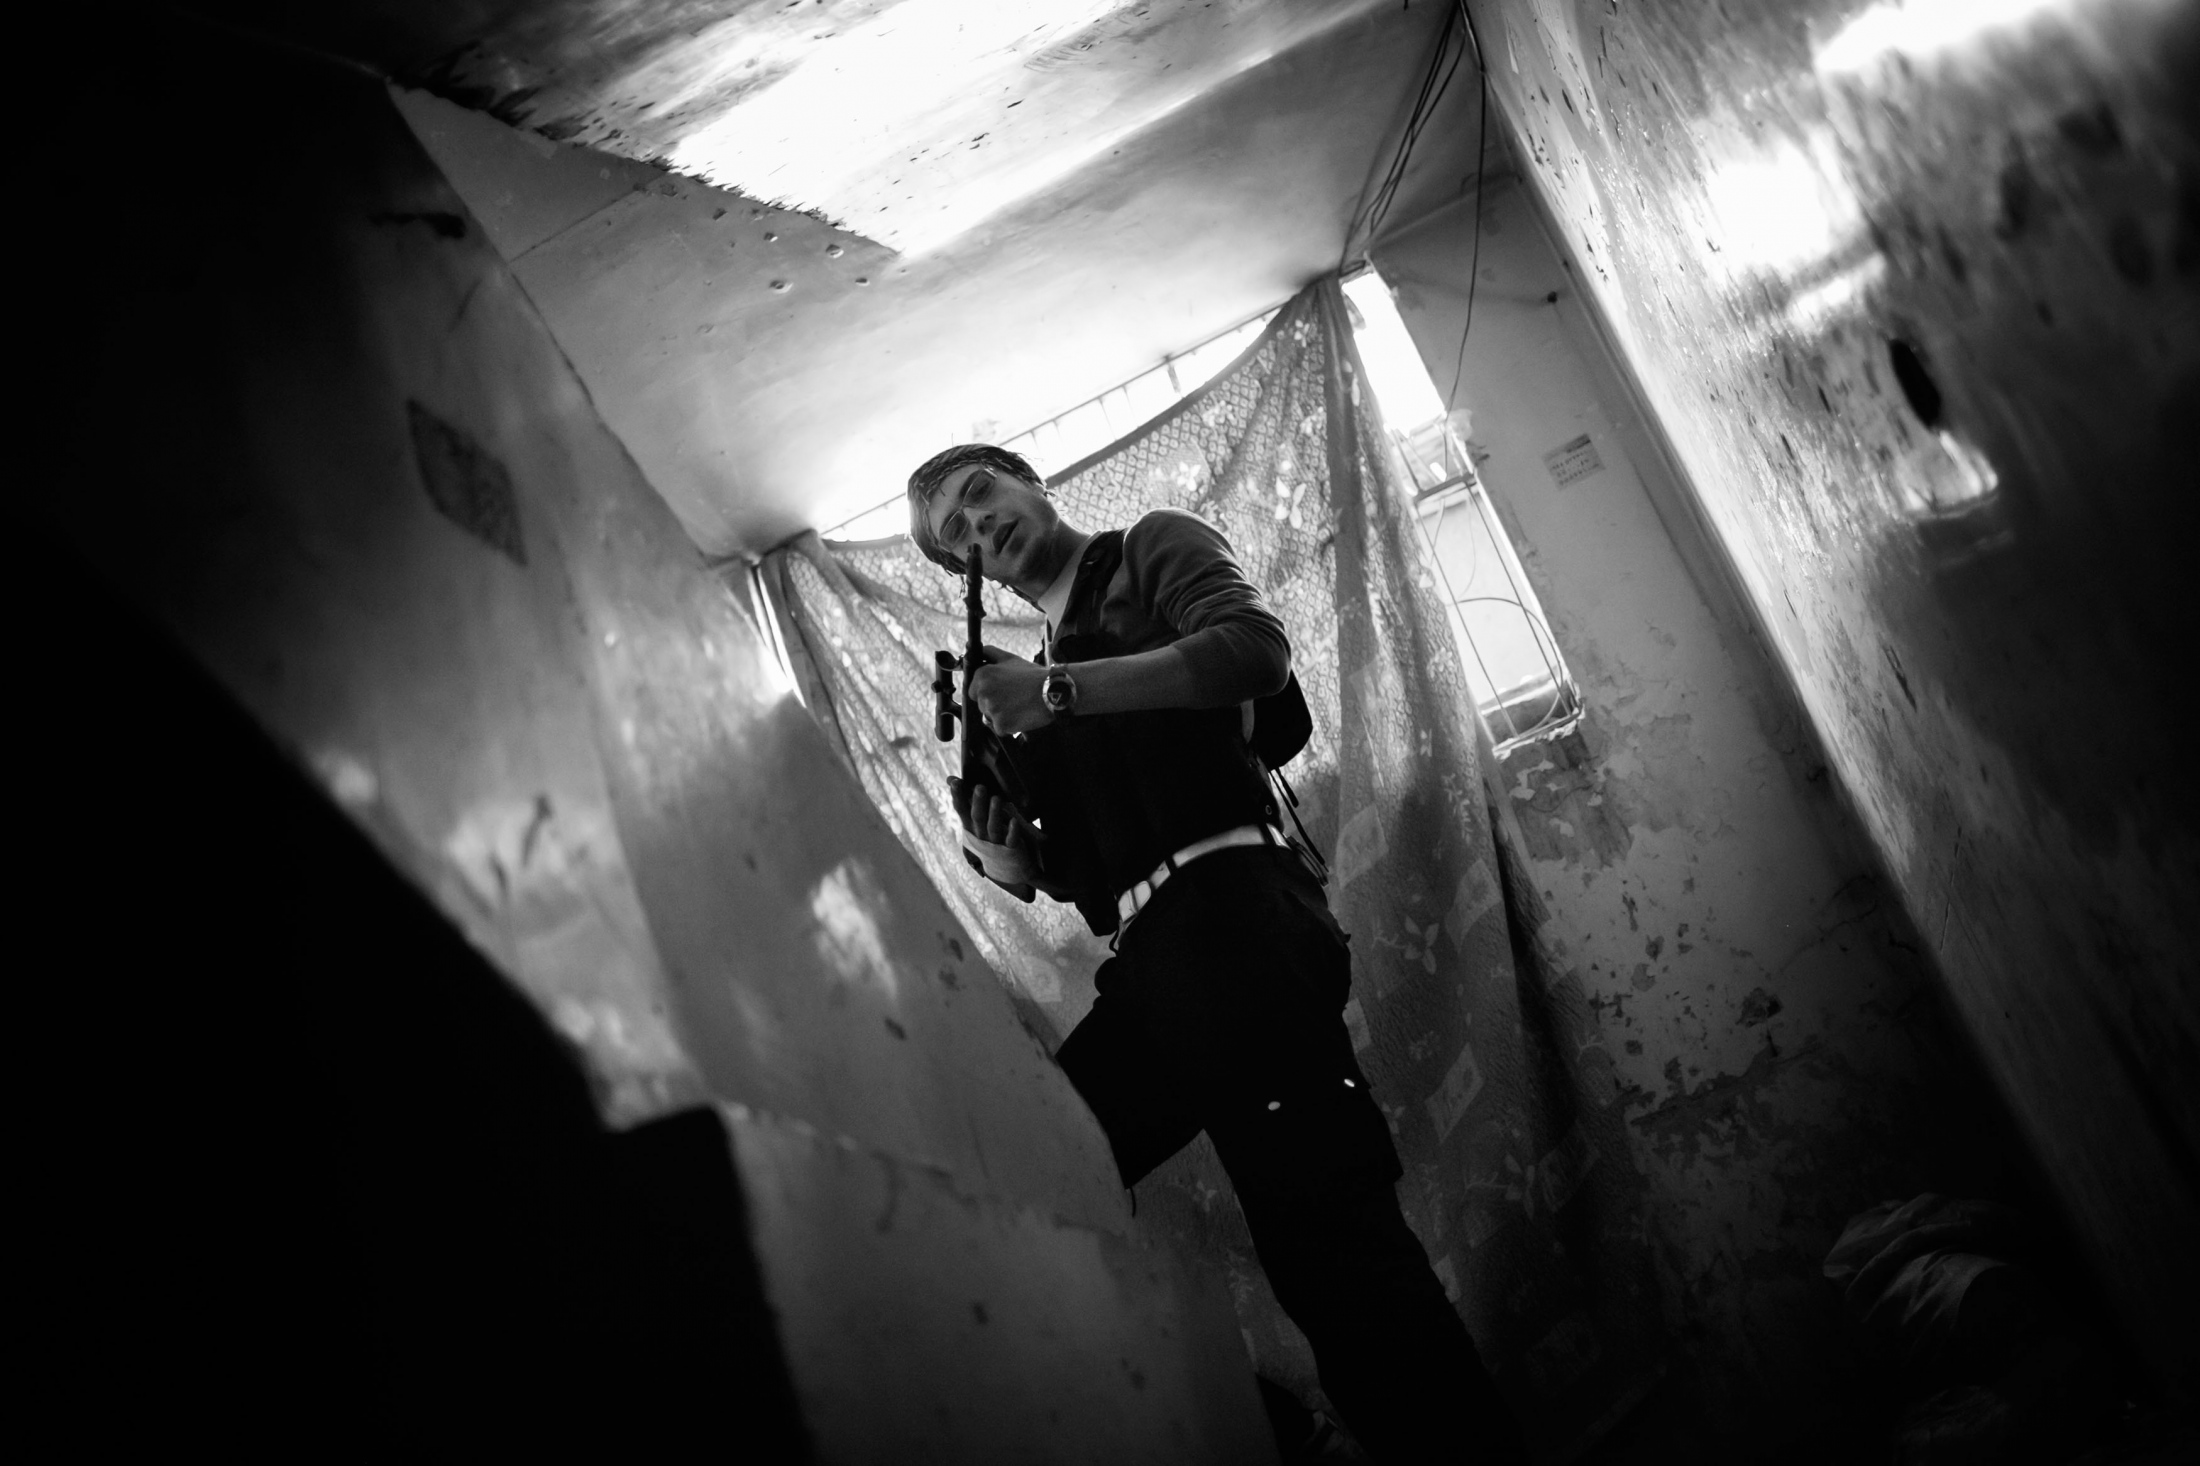 """A Syrian islamist rebel called Jamil shows his weapon inside a abandoned building in the Izaah neighborhood of Aleppo, Syria, Wednesday, Jan. 3, 2013. This pictures was the last one of Jamil before he was shoot dead some hours after. The United Nations estimated that more than 400,000 people have been killed in Syria's 60-month-old uprising against authoritarian rule, a toll one-third higher than what anti-regime activists had counted. The U.N. human rights chief called the toll """"truly shocking."""" Copyright: Spanish Photojournalist Andoni Lubaki"""